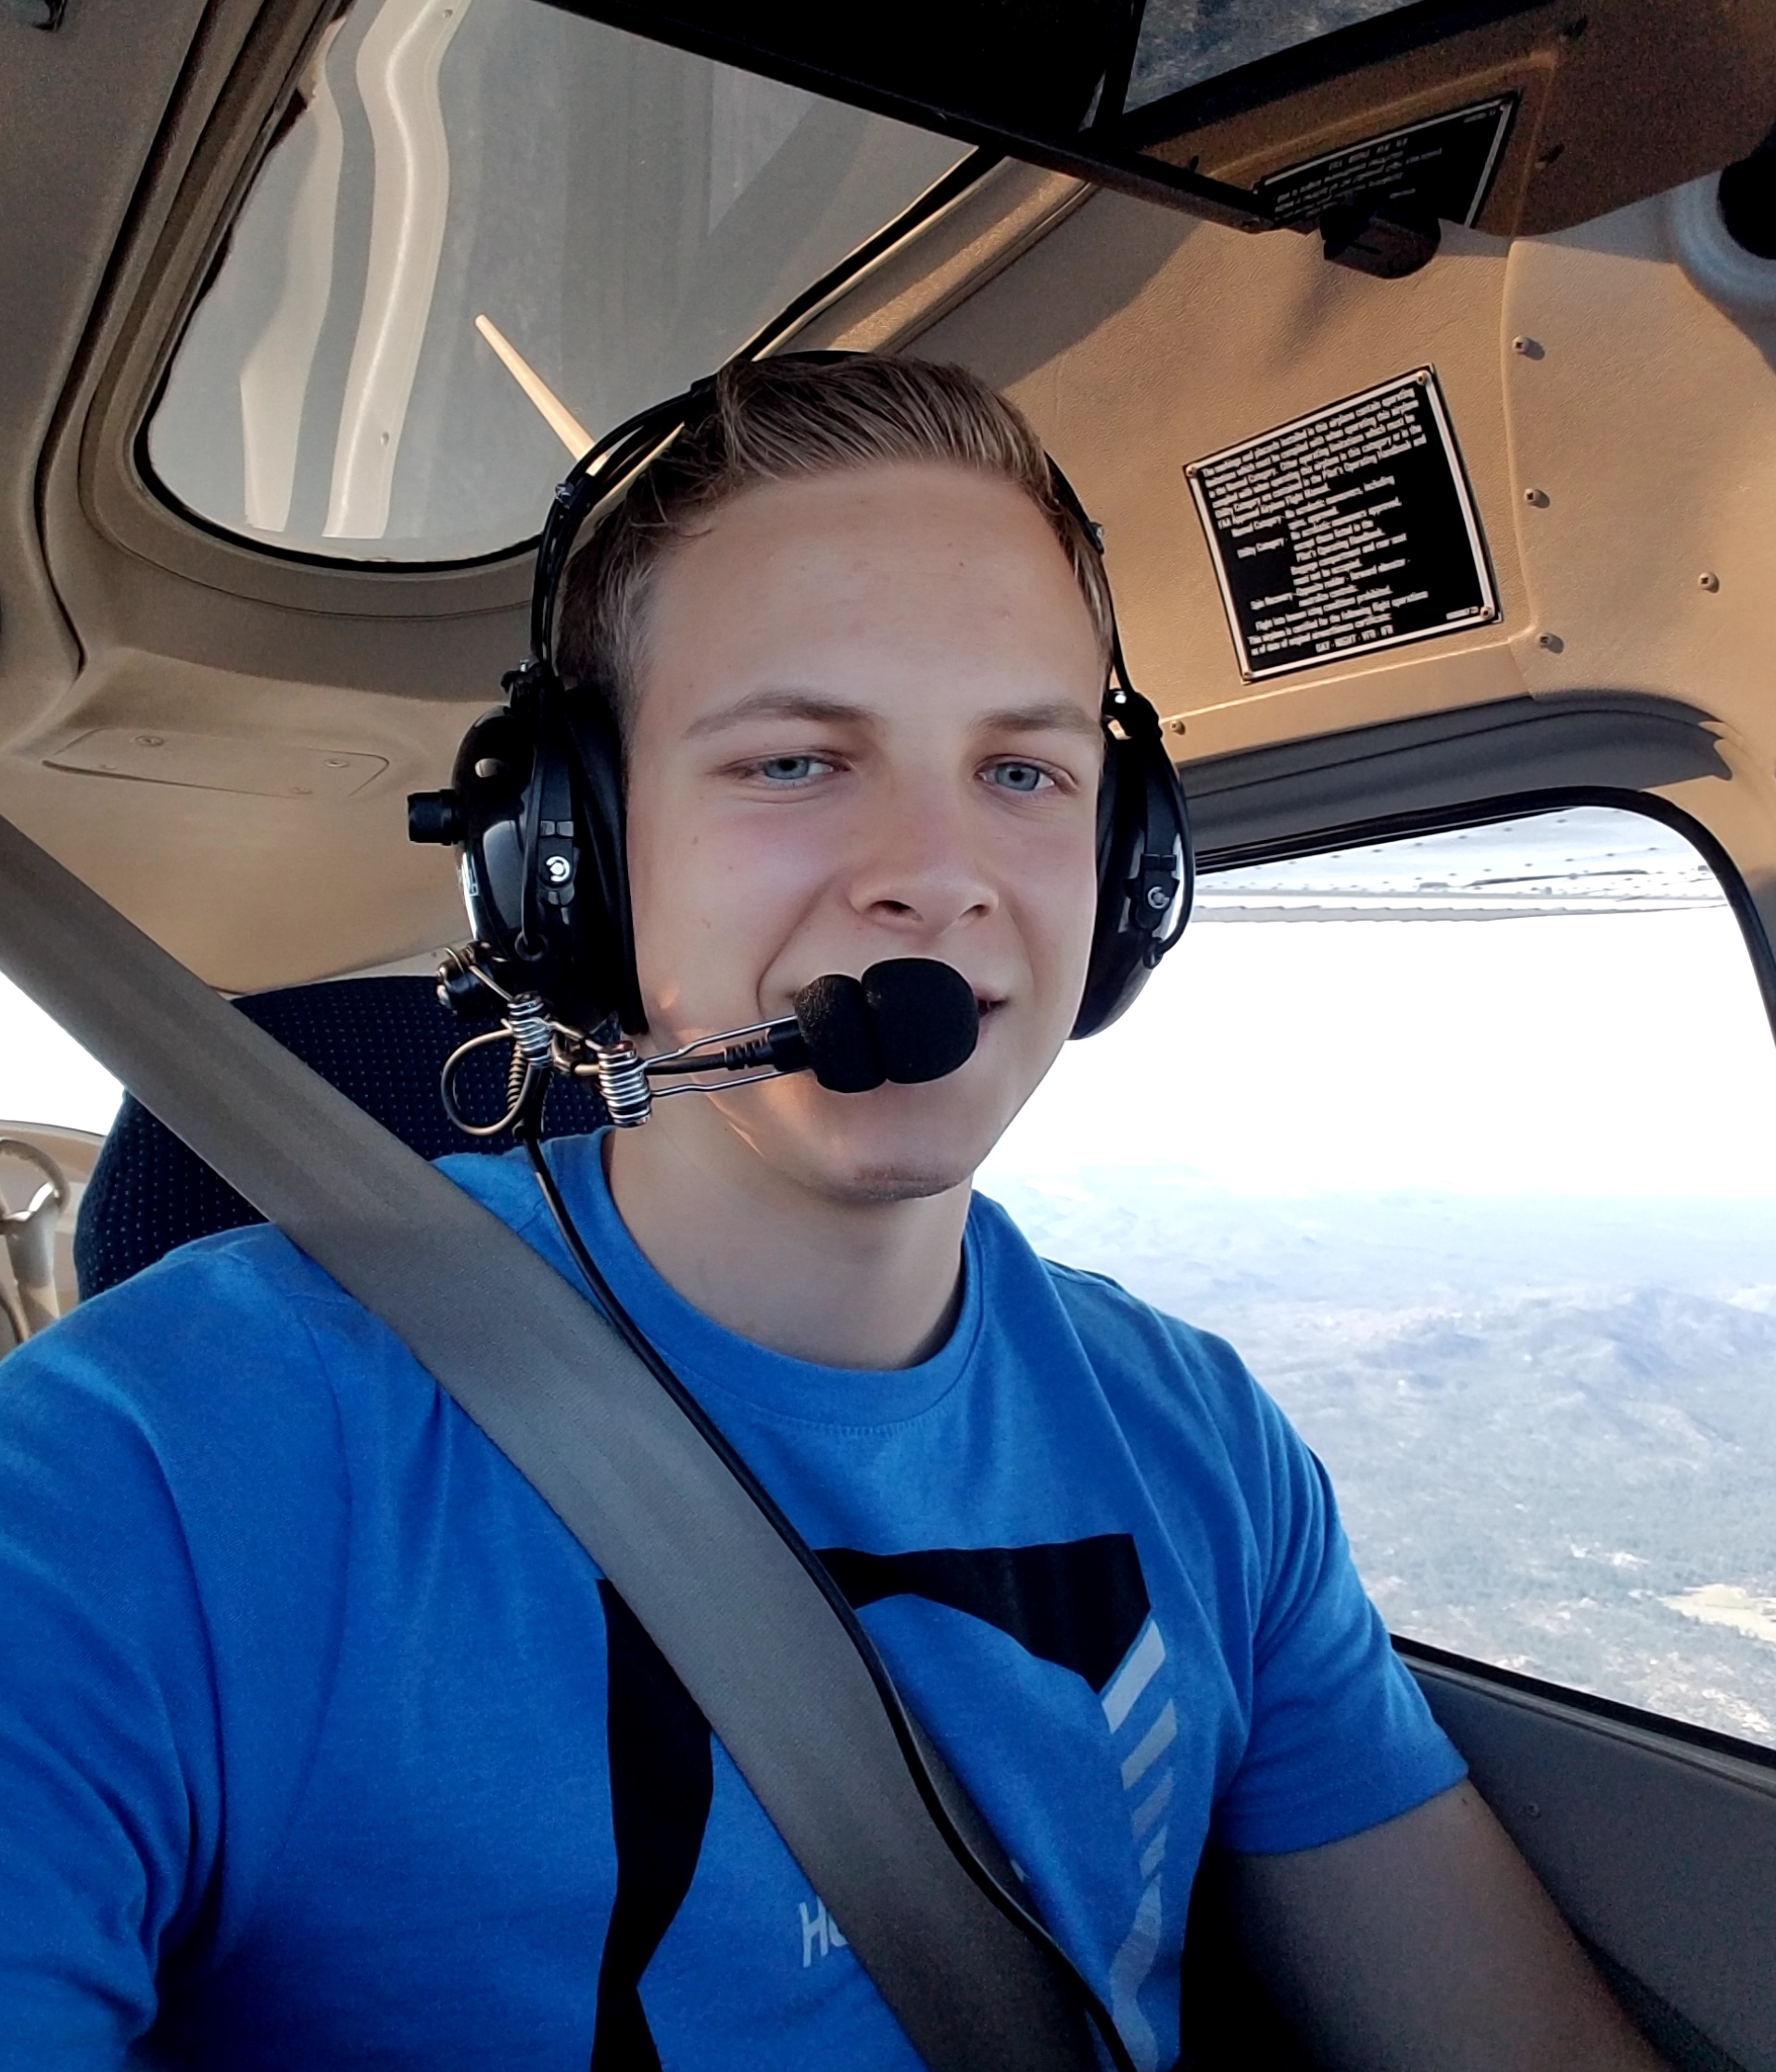 Flight Levels - CJP Scholar Updates: A Year in Review